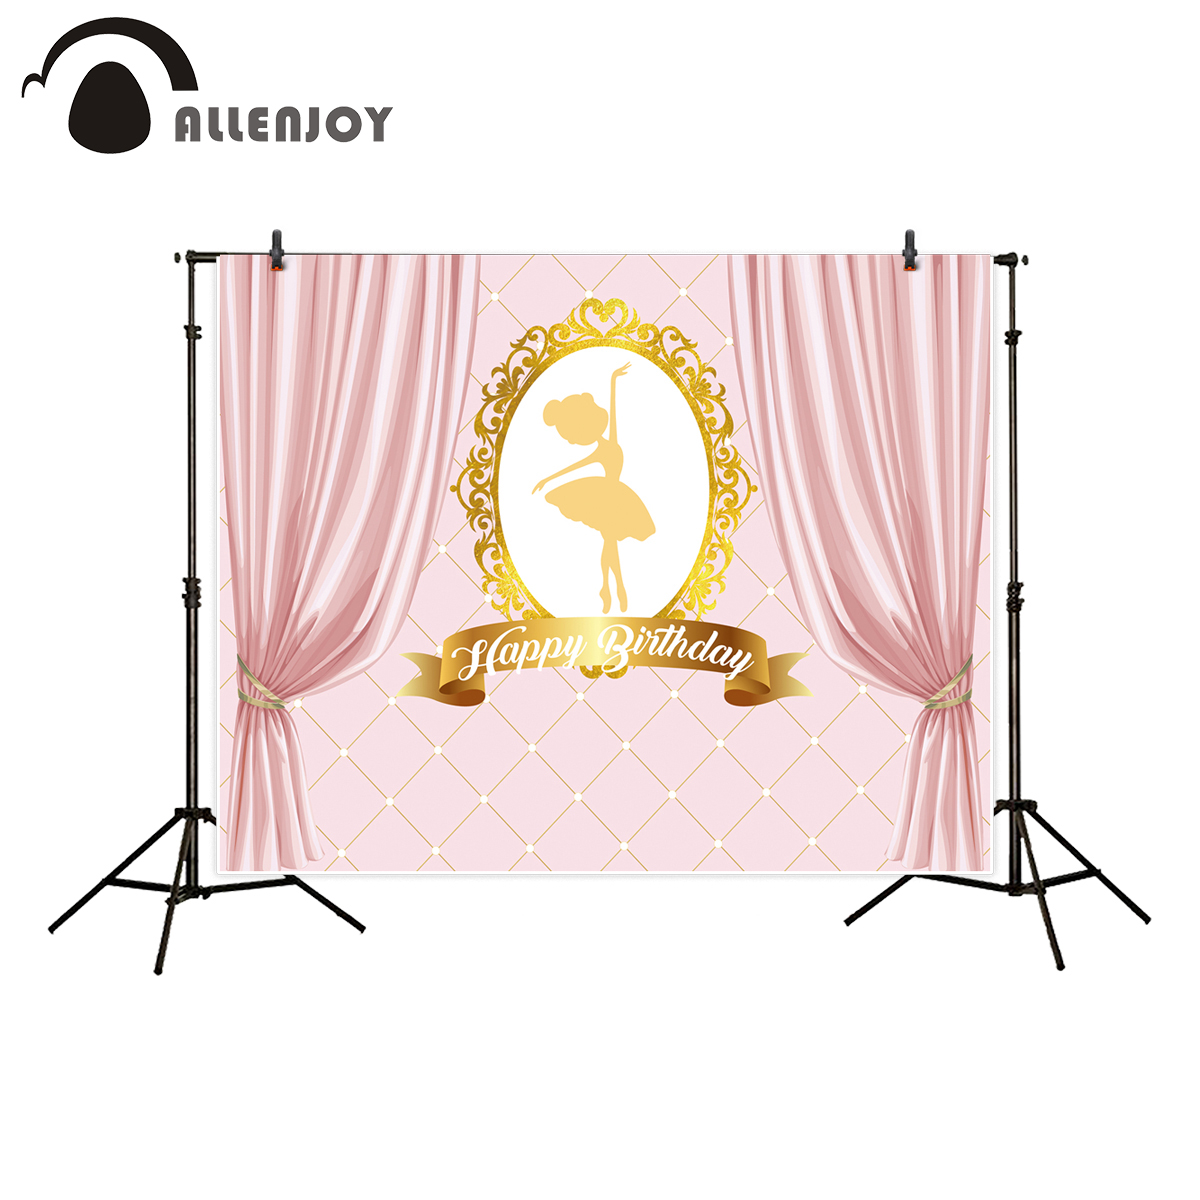 Allenjoy background for photo studio Ballerina girl theme birthday party pink photography backdrop printed new allenjoy photography background baby shower step and repeat backdrop custom made any style wedding birthday photo booth backdrop